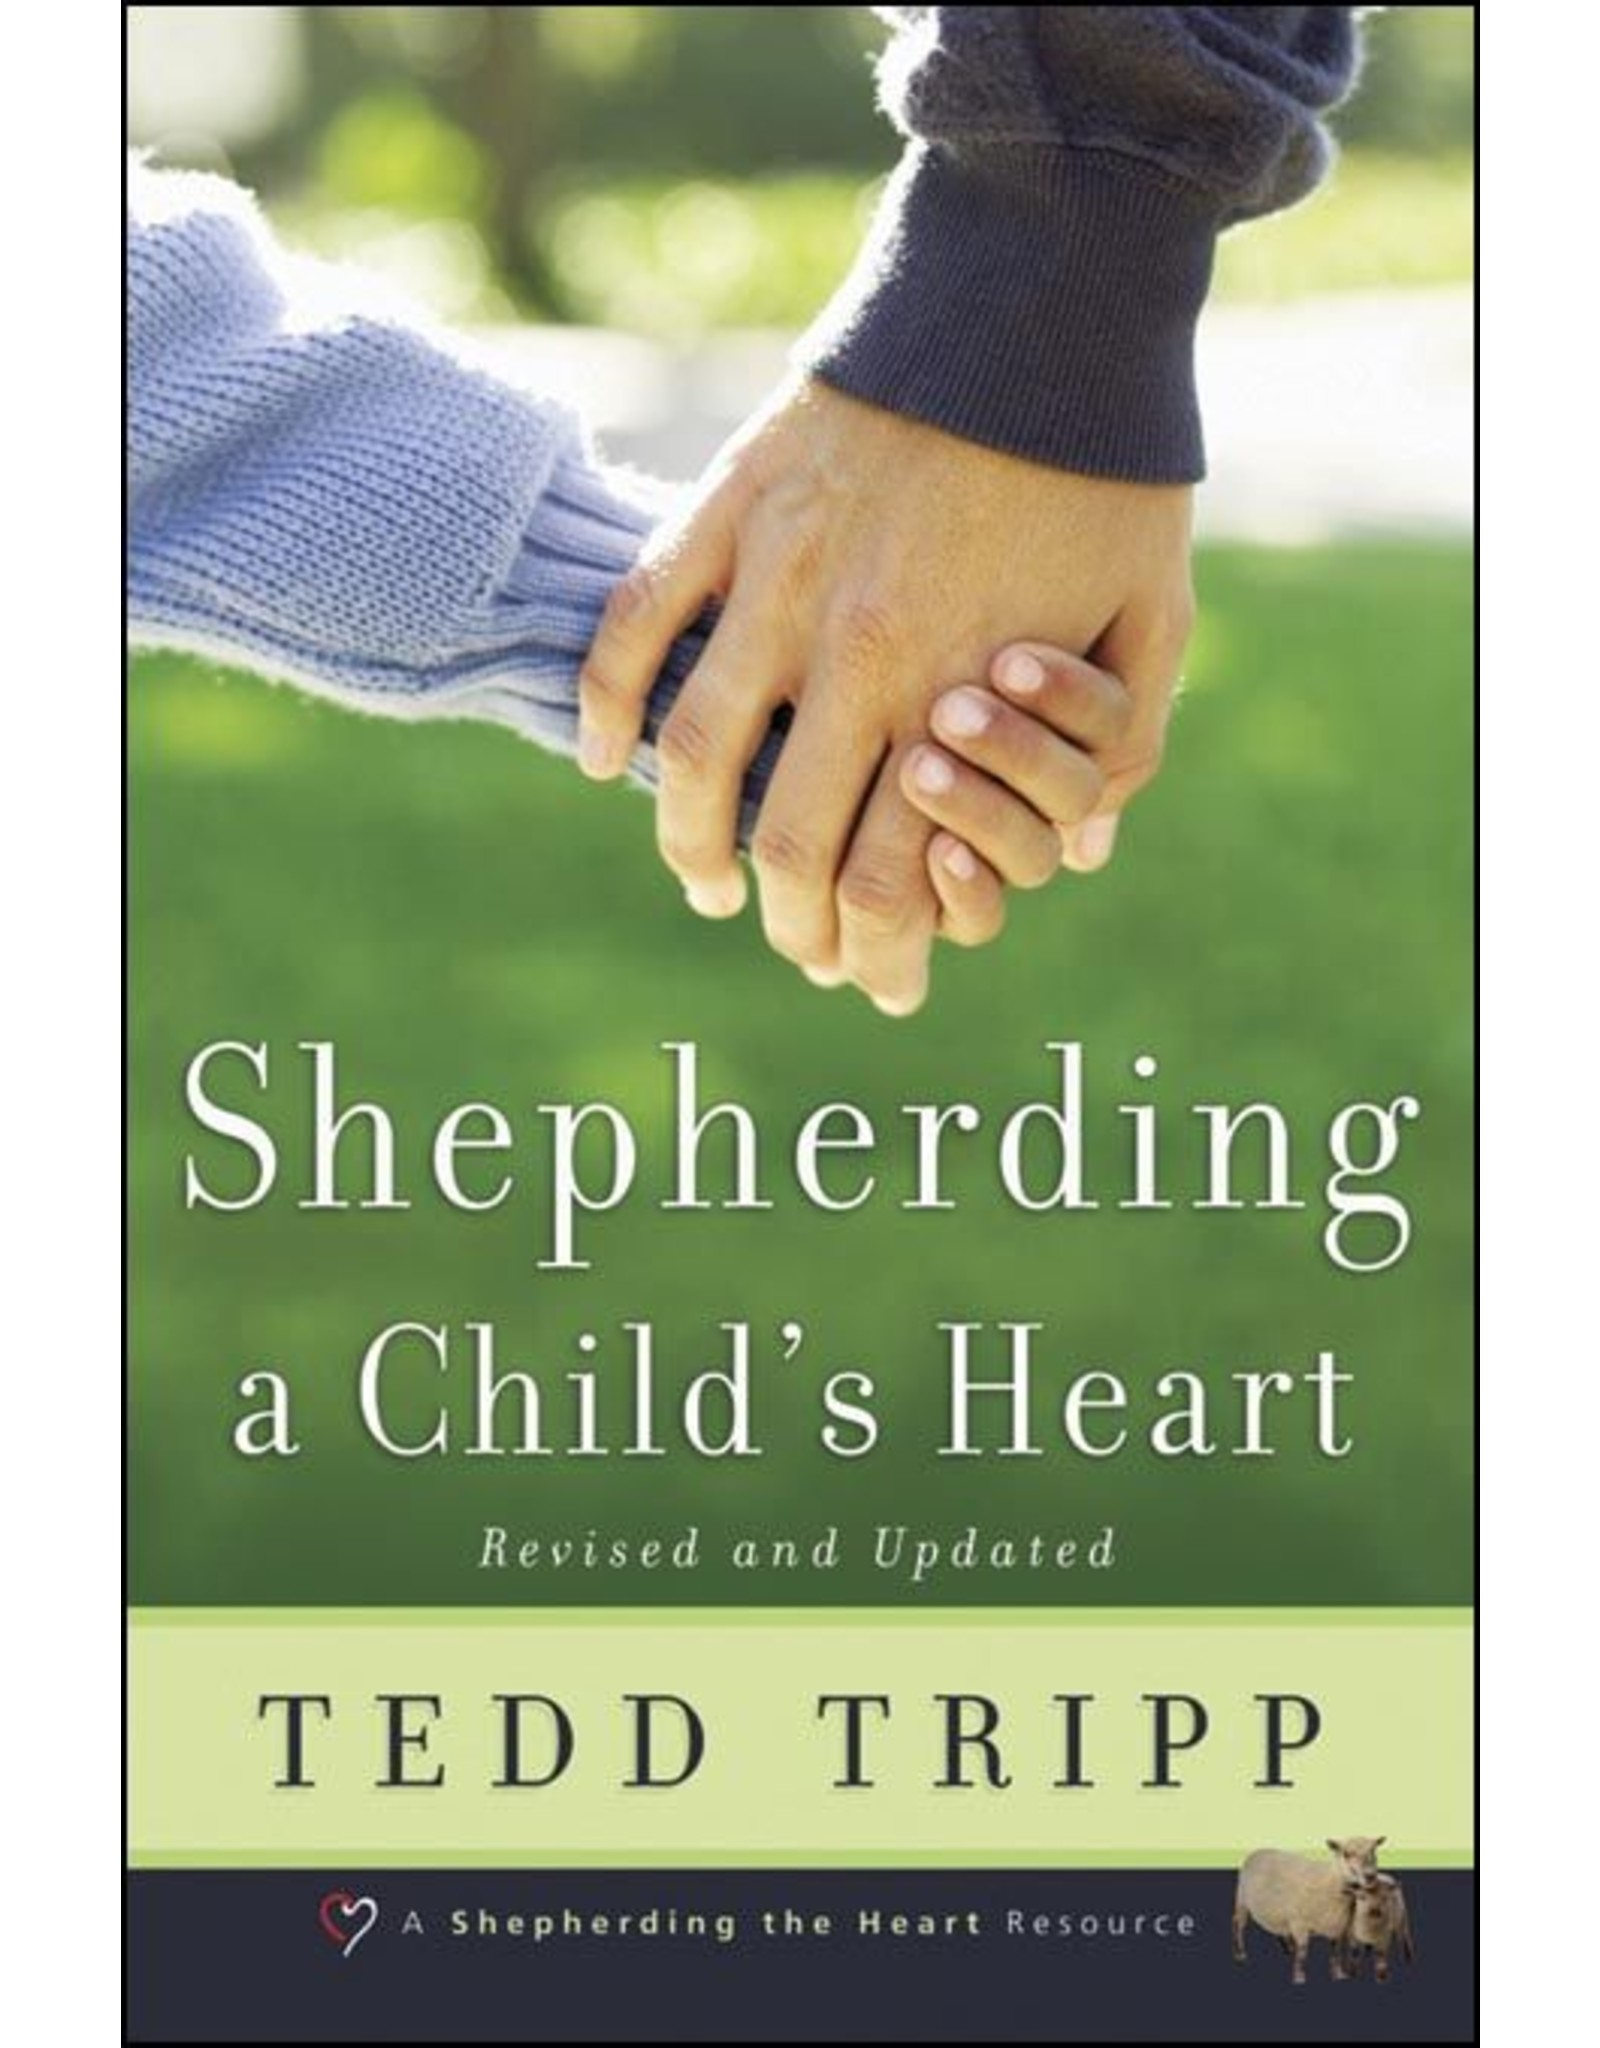 Shepherd Press Shepherding a Child's Heart (Revised and Updated)